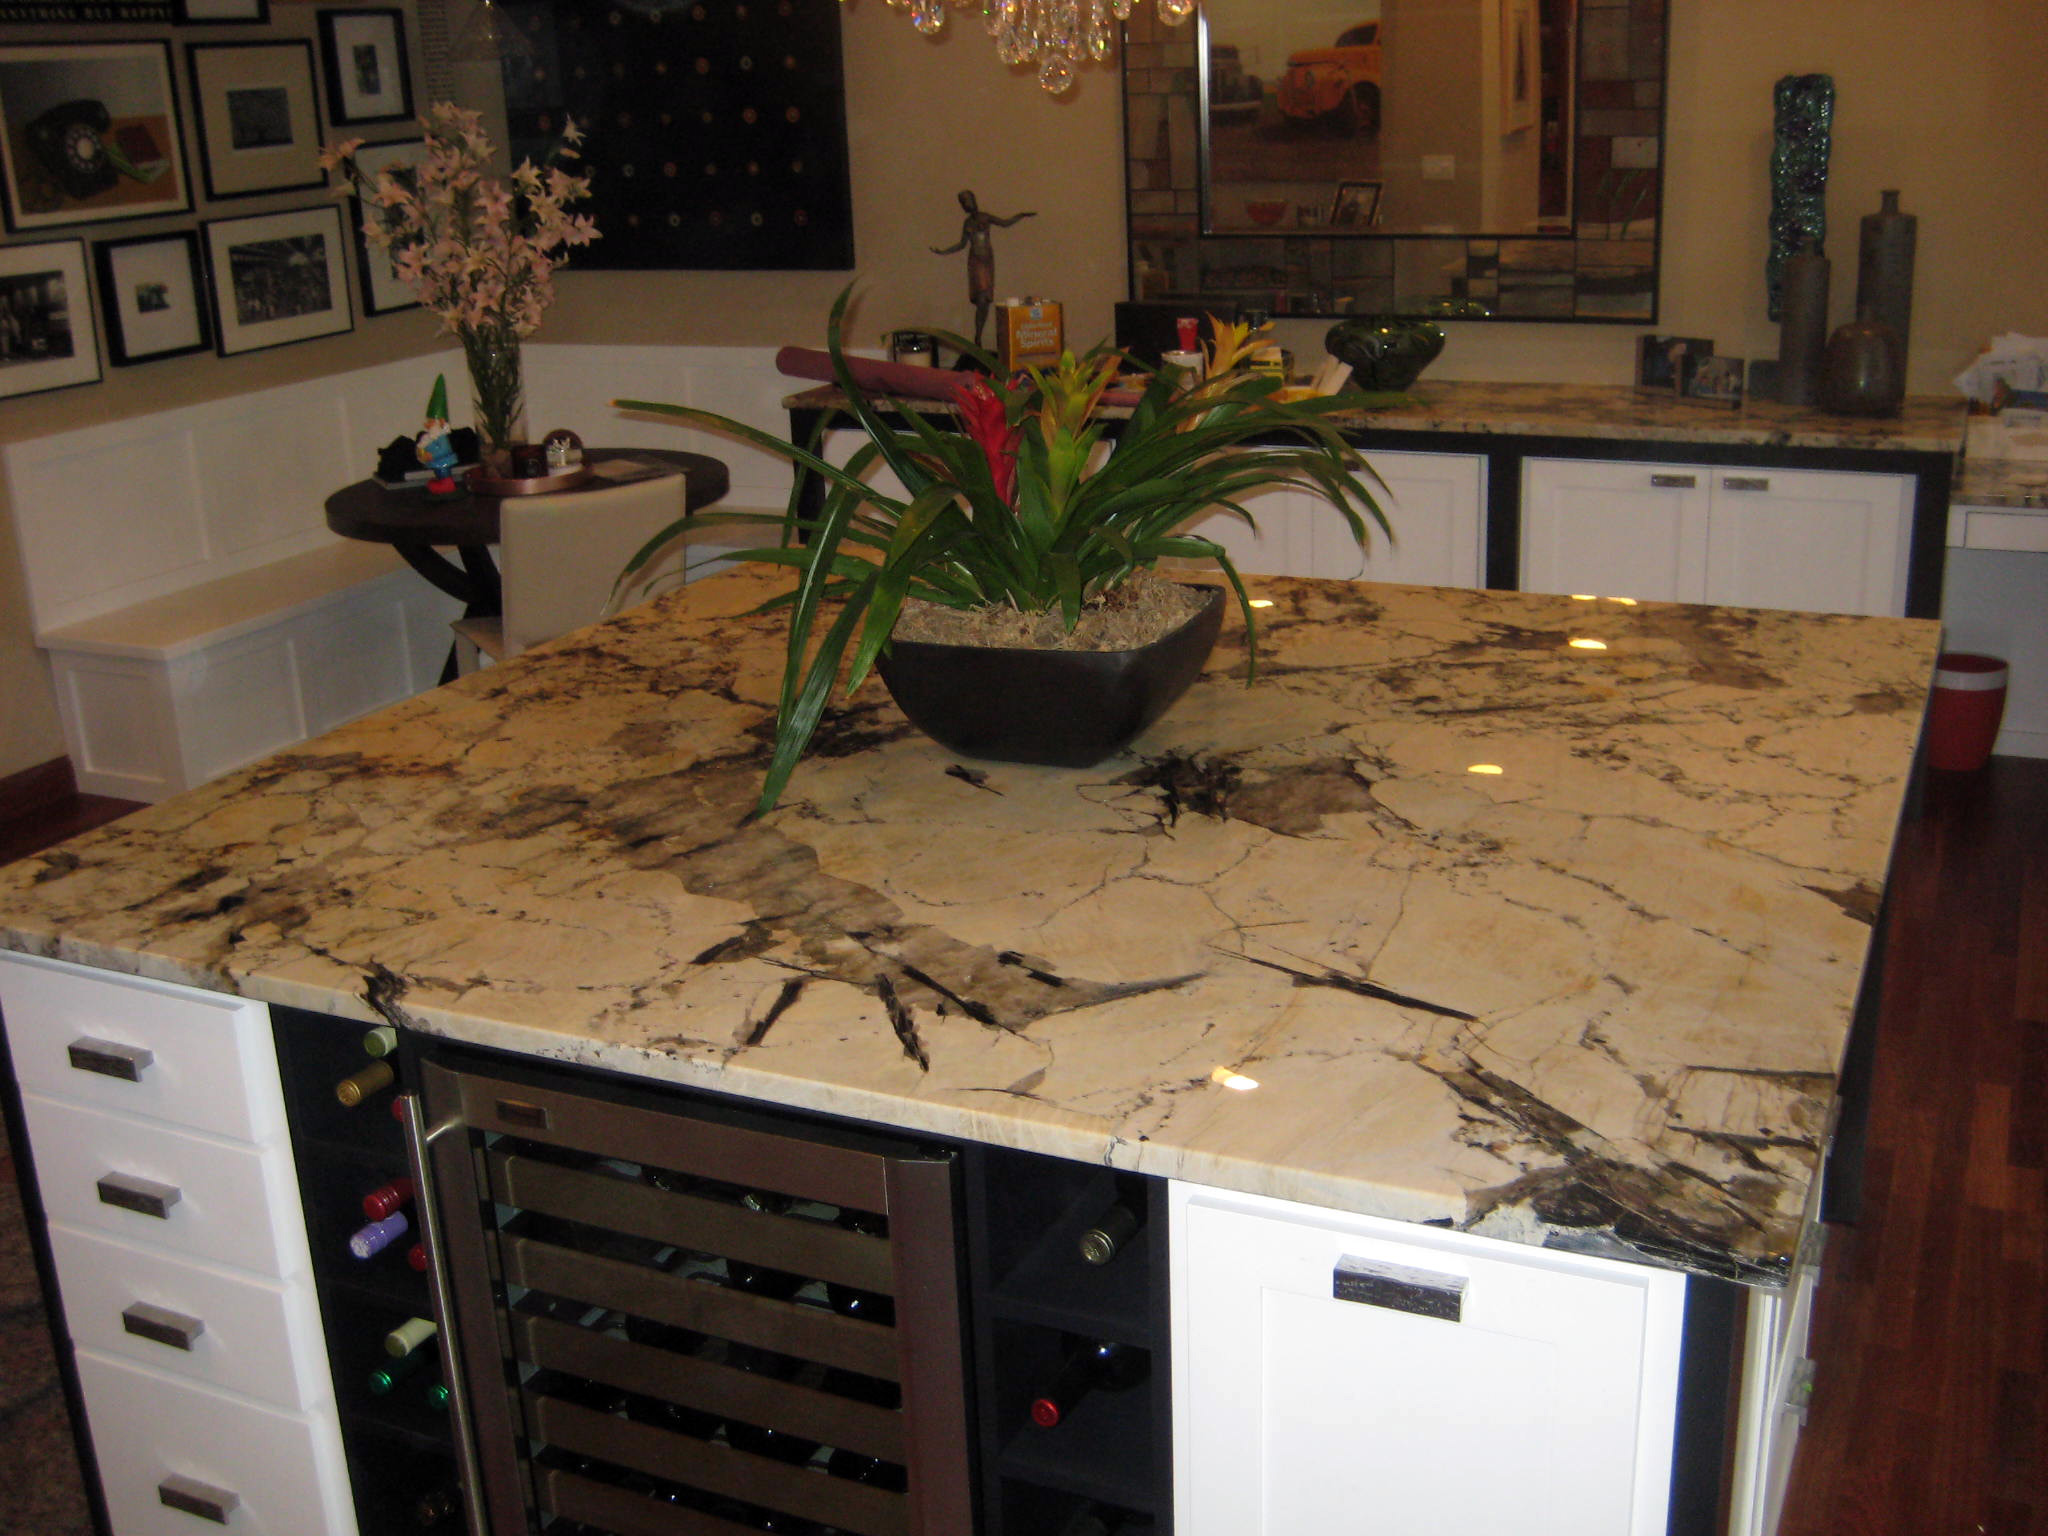 Granite Countertop Quotes Quotesgram. Kitchenaid Yellow Food Processor. Kitchen Tile Grout Spacing. Rustic X Kitchen Island. Kitchen Glass Door Designs Images. Kitchen Lighting Rustic. Kitchen Hood Kuala Lumpur. Kitchen Drop Zone Ideas. Kitchen Bathroom Centre Valley Anglesey